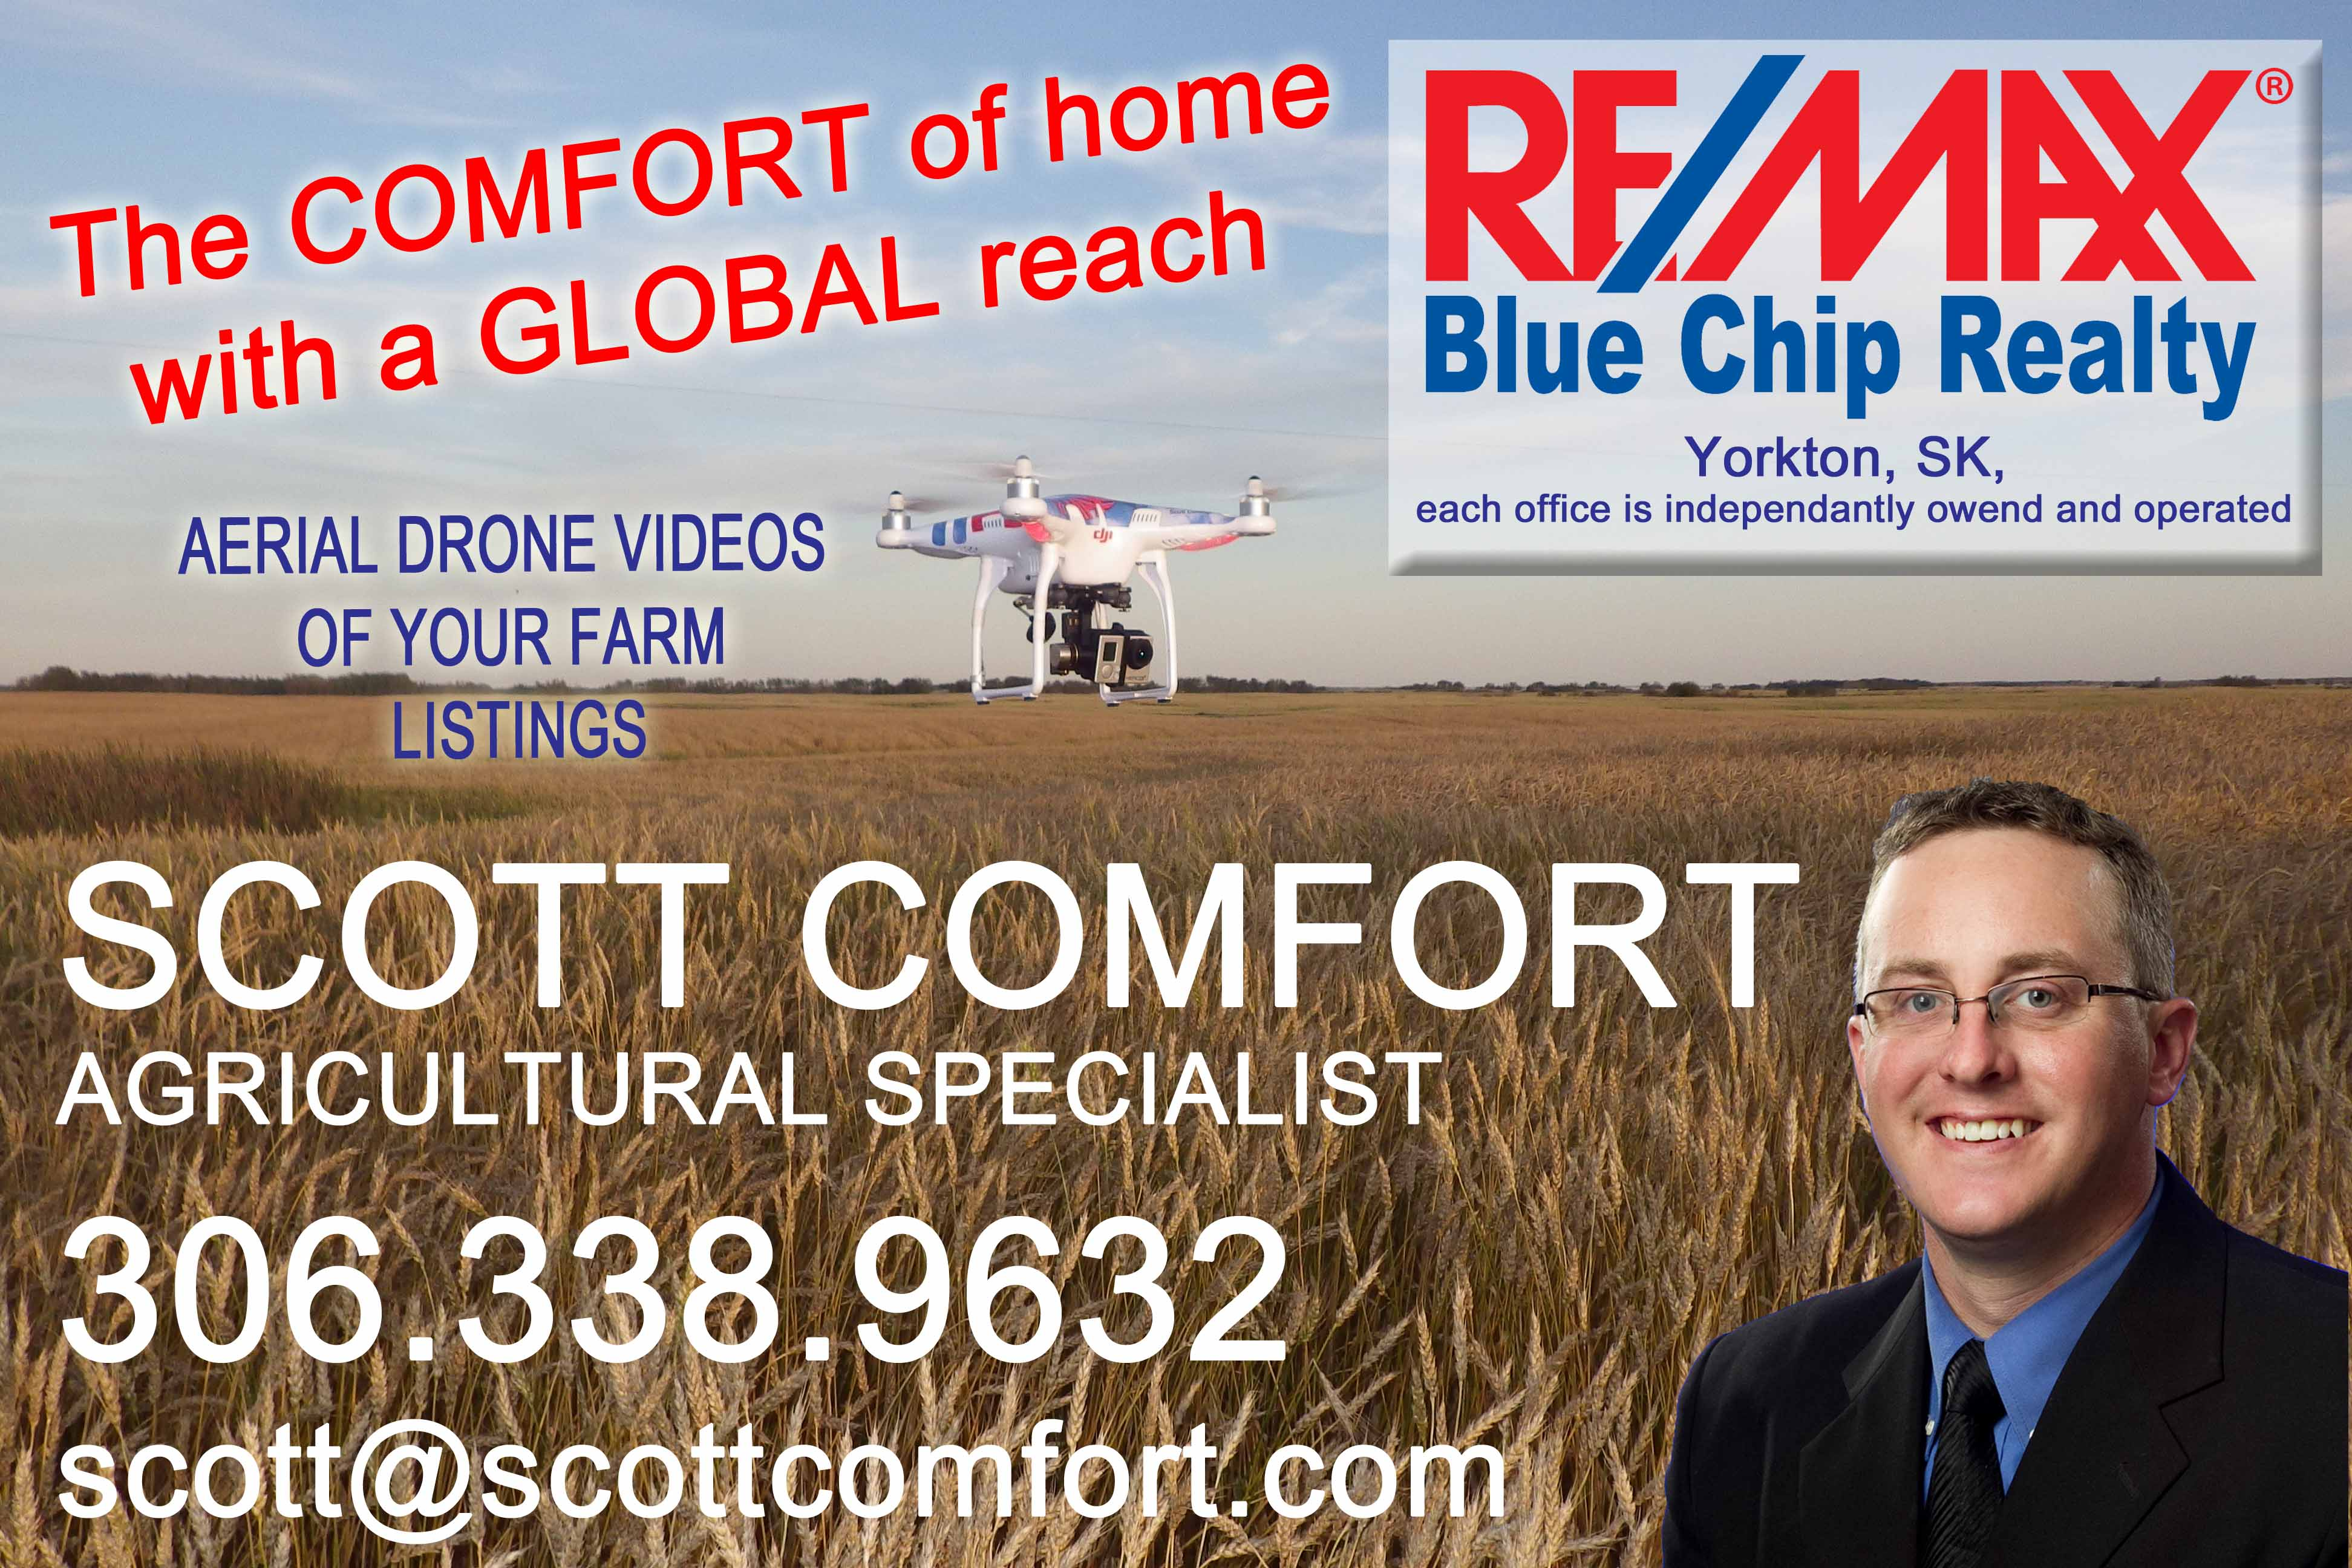 Scott Comfort RE/MAX Blue Chip Realty